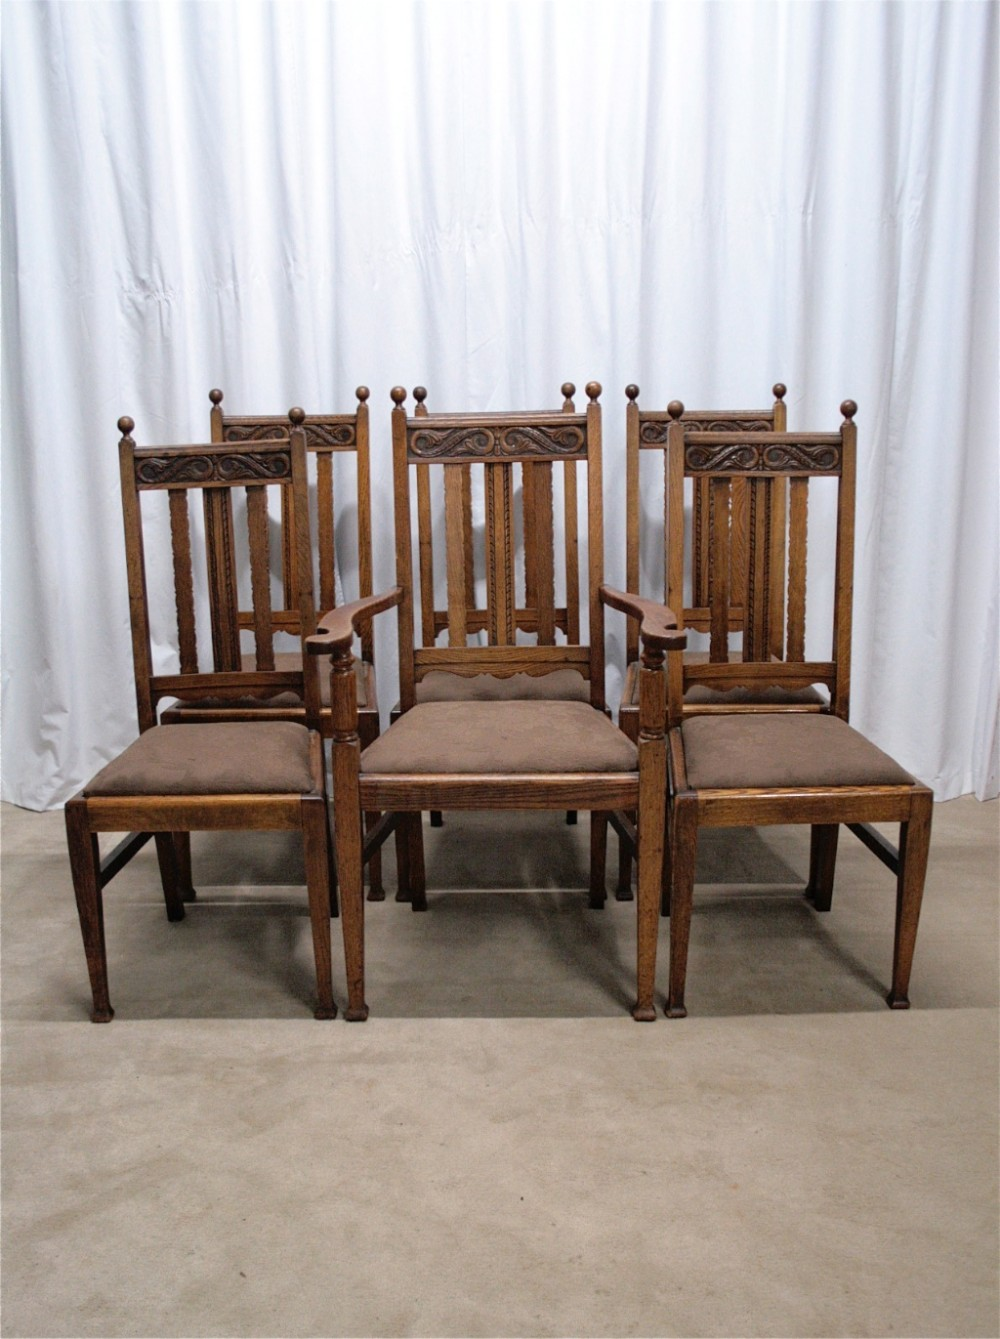 antique oak dining chairs for sale antique chairs for uk antique furniture 9030